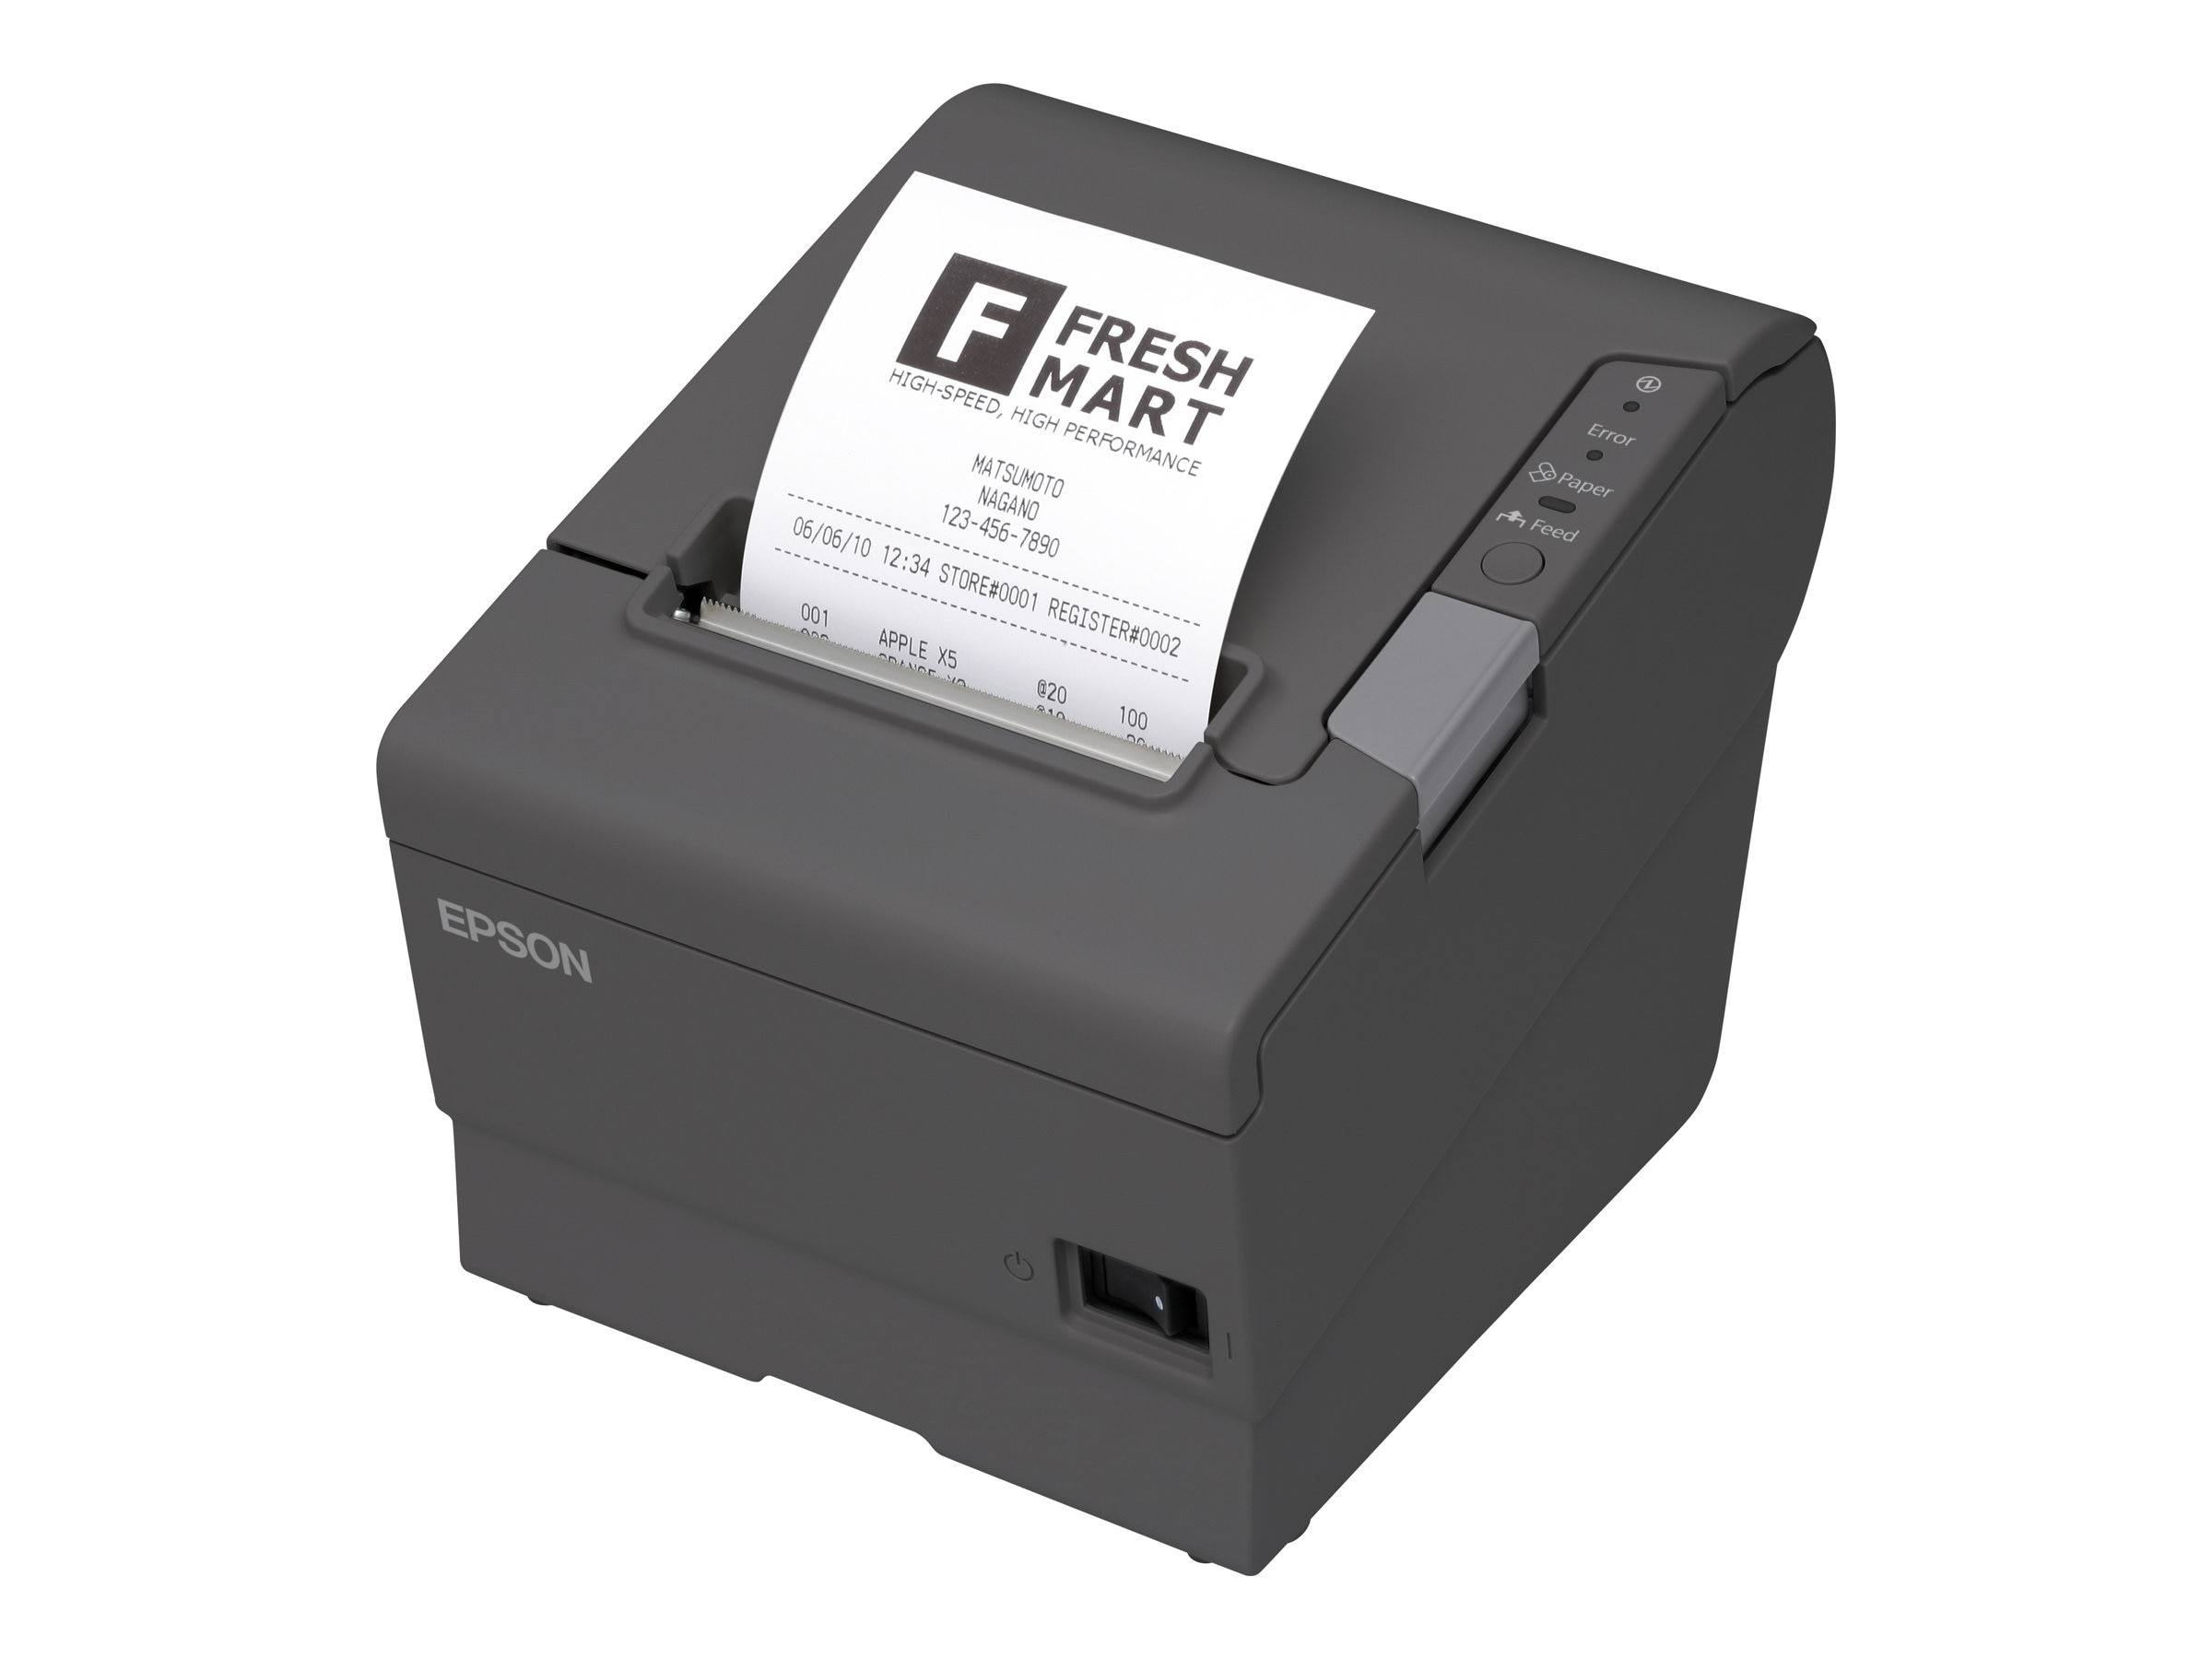 Epson TM-T88V USB Serial POS Printer - Dark Gray w  PS180 Power Supply